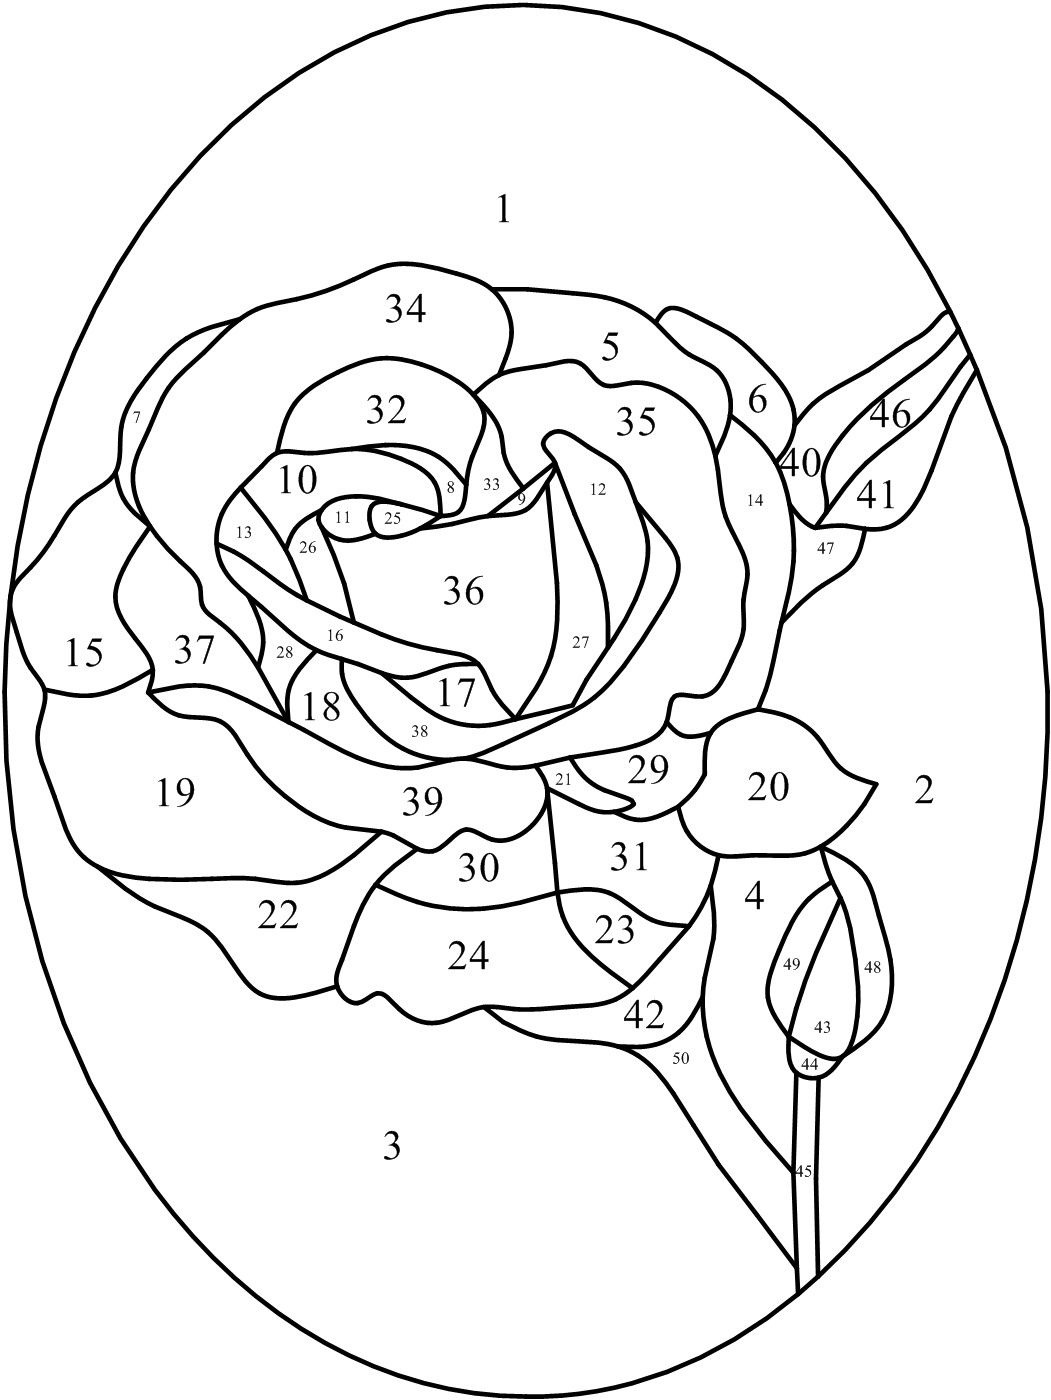 Simple Stained Glass Patterns Printable | Click To Print ; Resize To - Free Printable Stained Glass Patterns